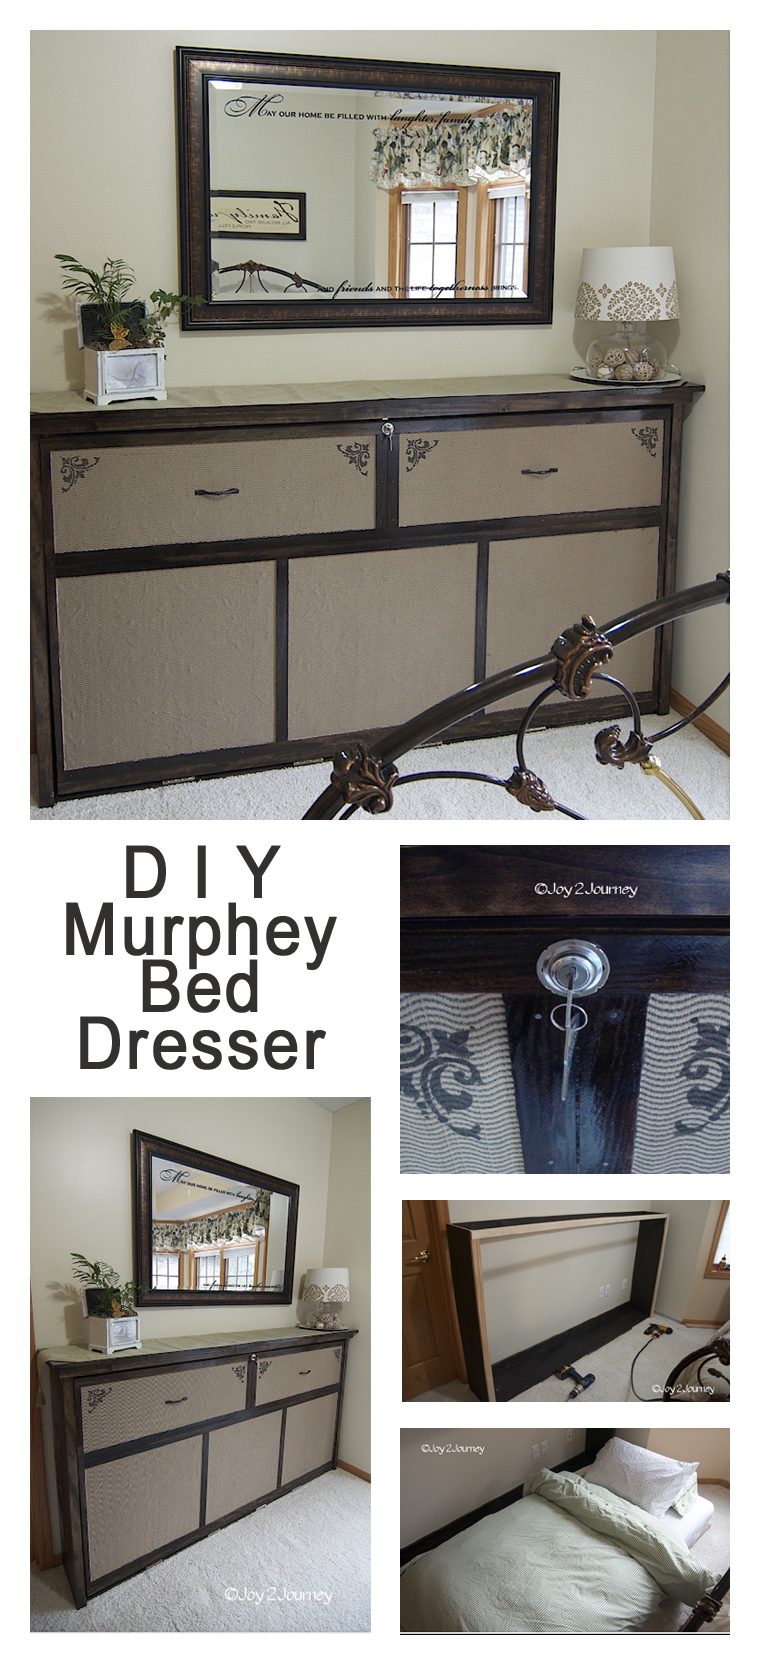 Side Mount Twin Murphy Bed To Diy Murphey Bed Faux Dresser Remodelaholic How To Build Murphy